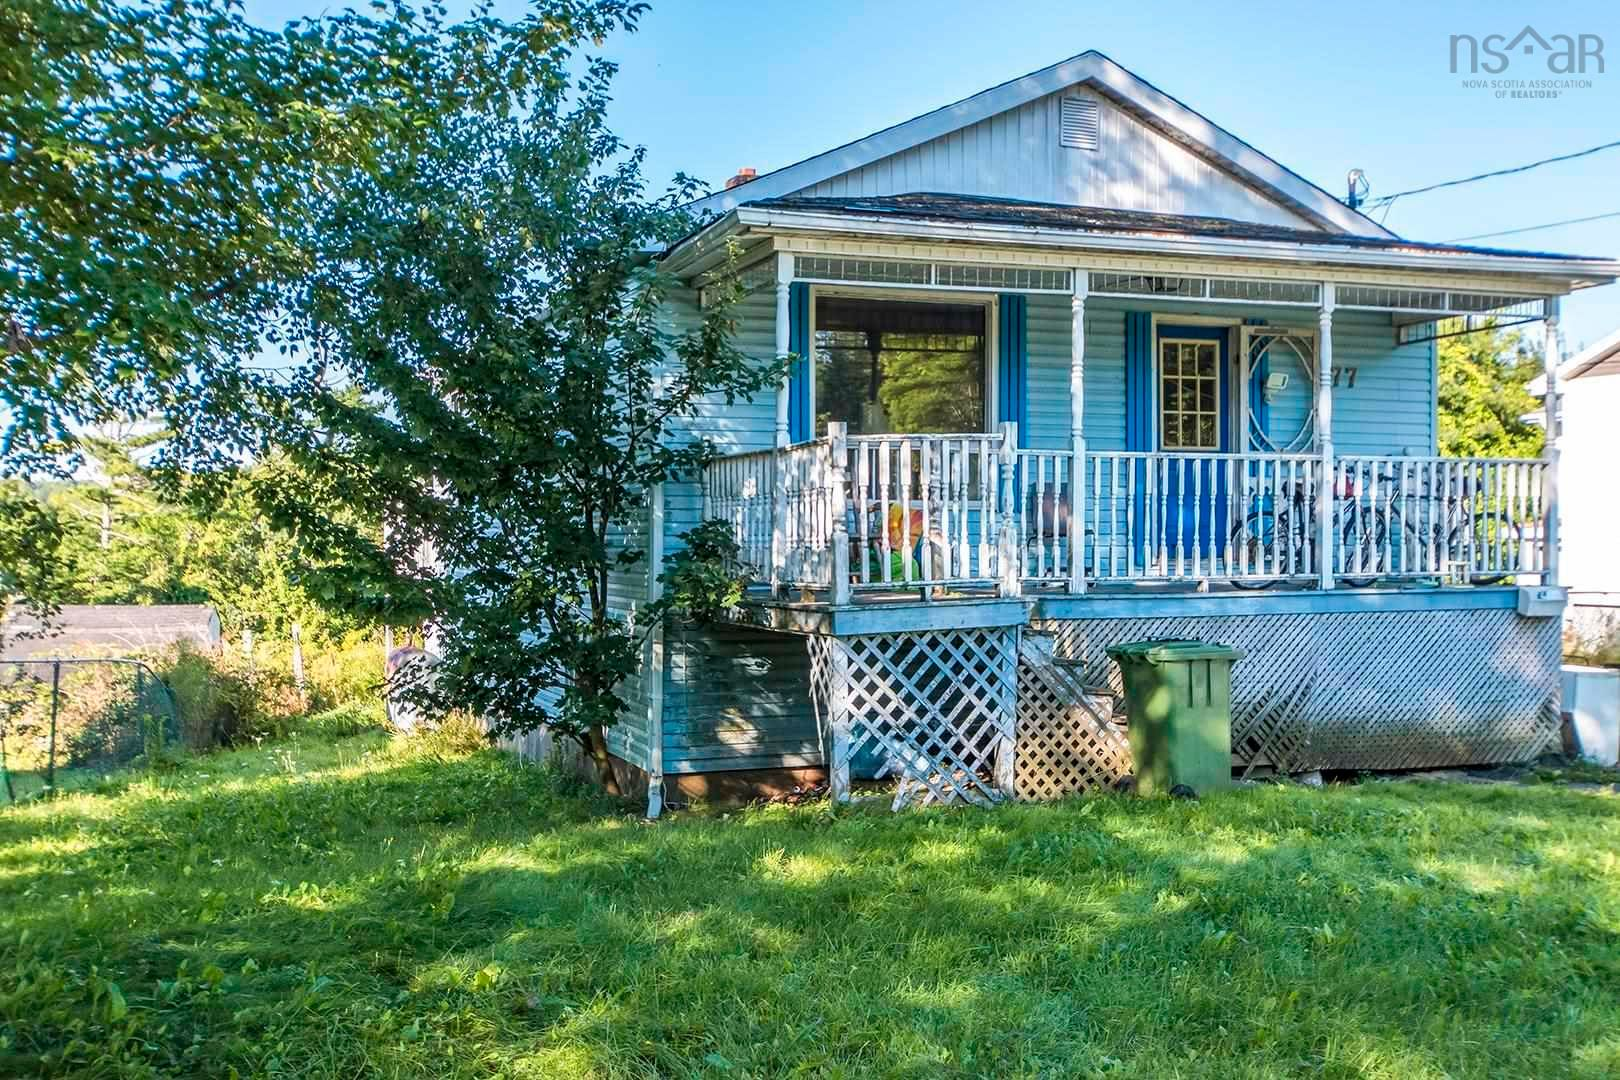 Main Photo: 77 Bissett Road in Cole Harbour: 16-Colby Area Residential for sale (Halifax-Dartmouth)  : MLS®# 202123658